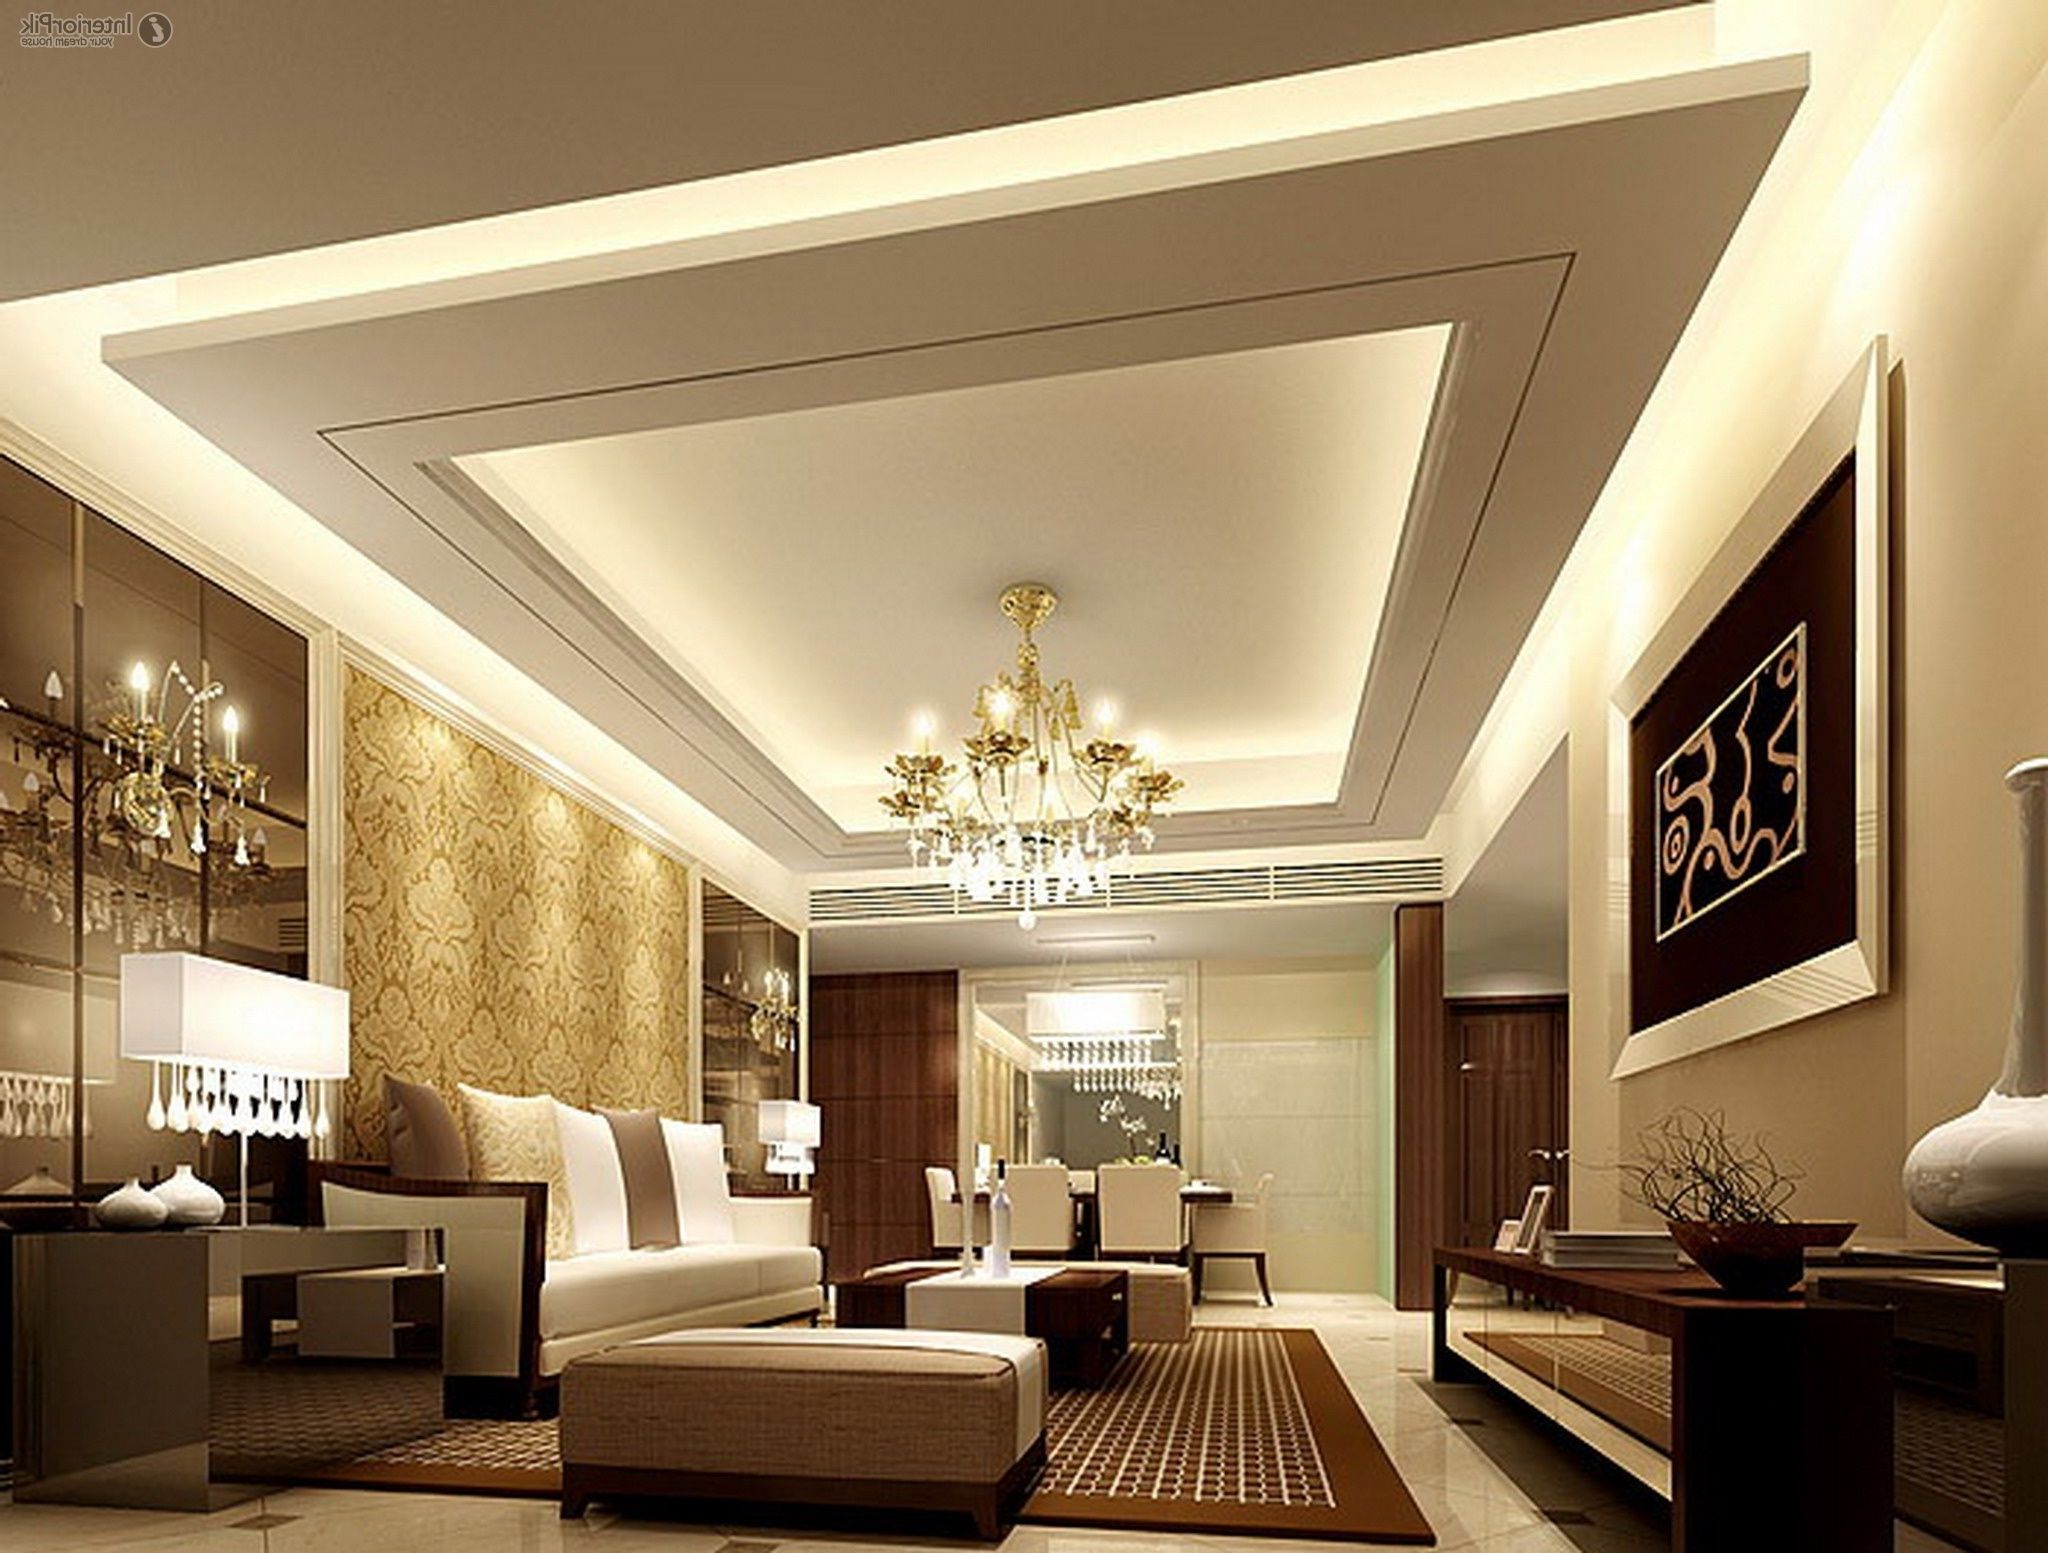 gypsum ceiling design for living room lighting home decorate best living room ceiling design - Design House Lighting